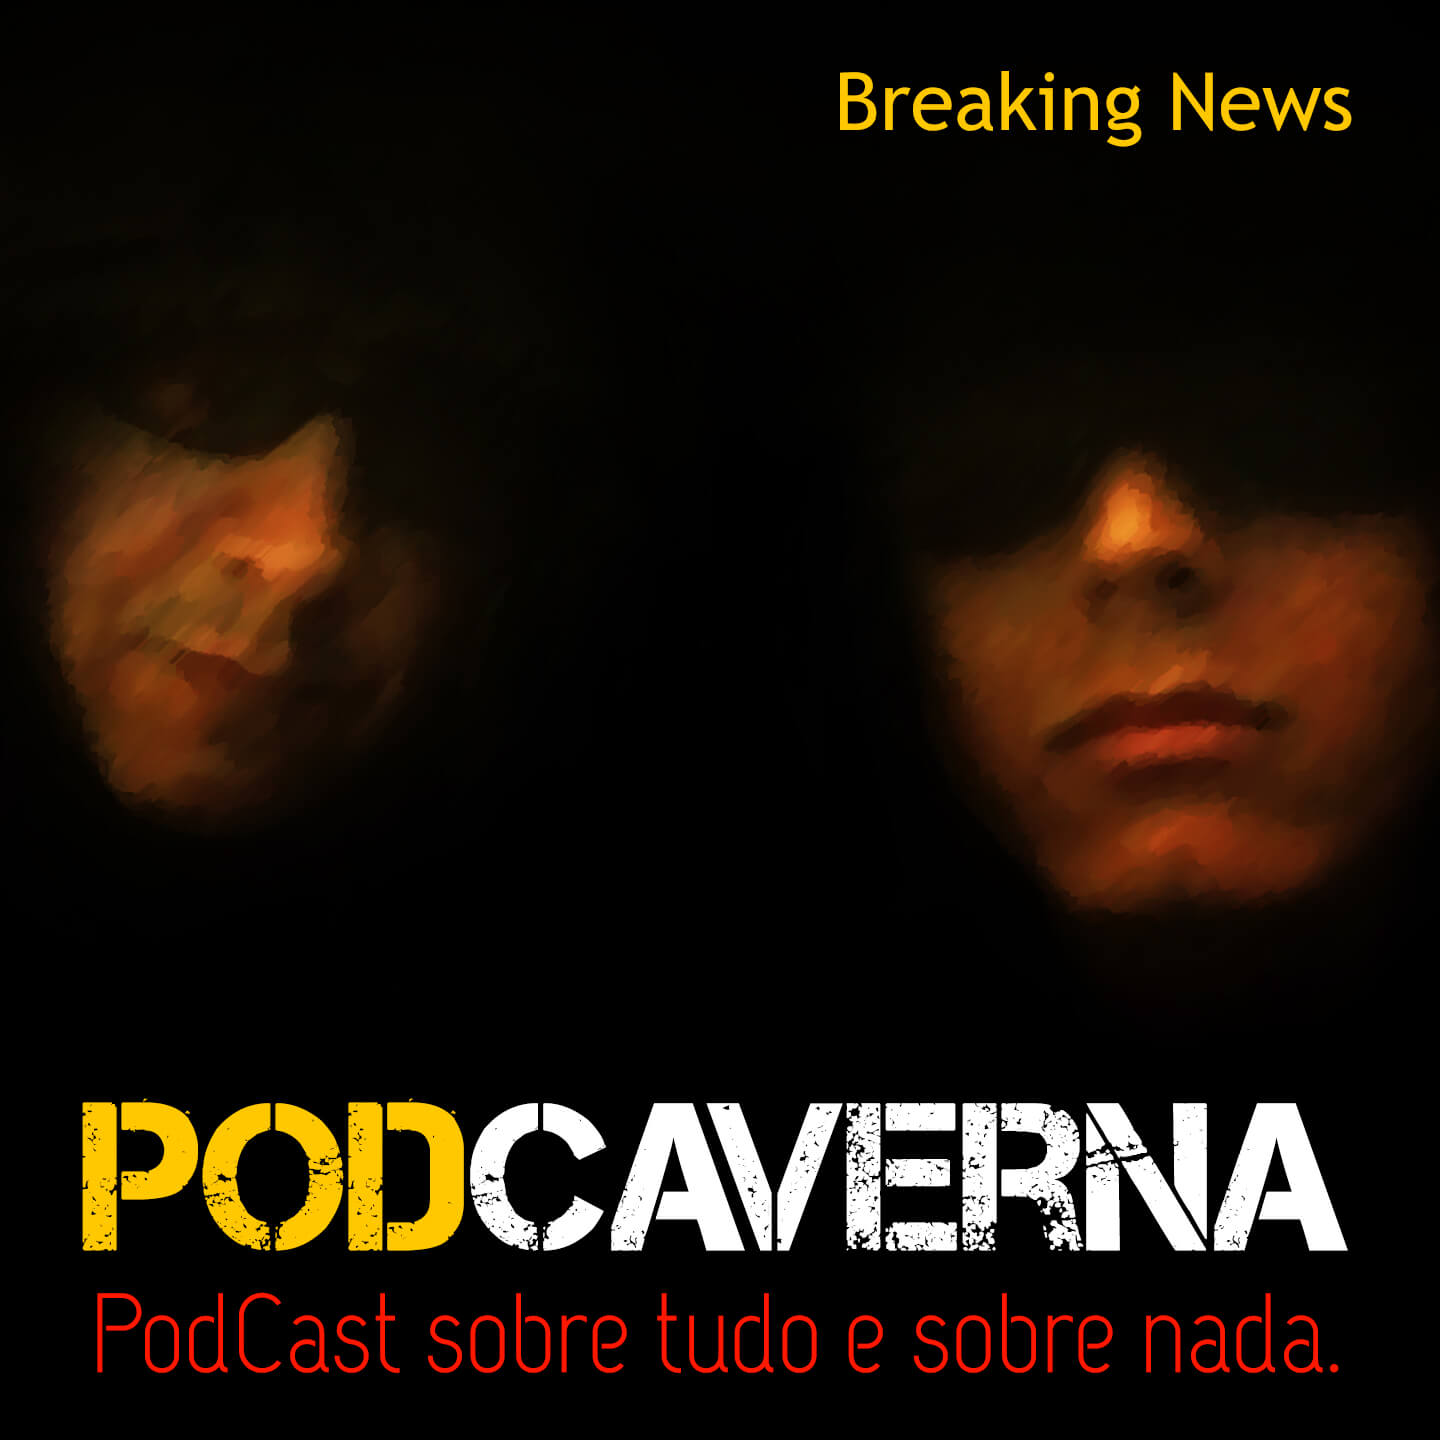 PodCaverna Breaking News